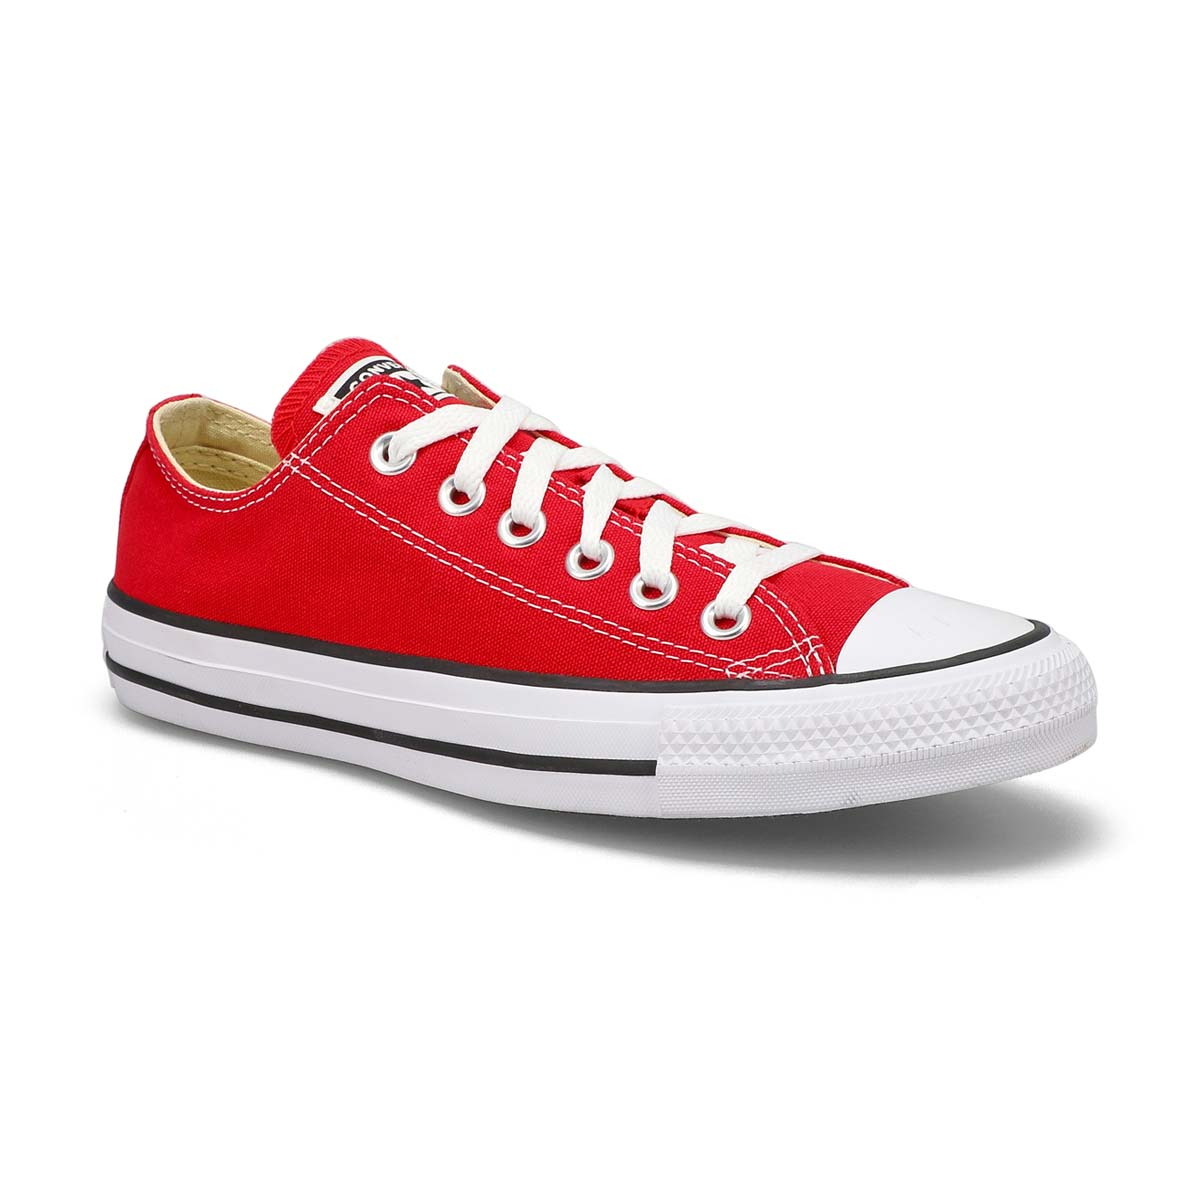 Women's Chuck Taylor All Star Sneaker - Red